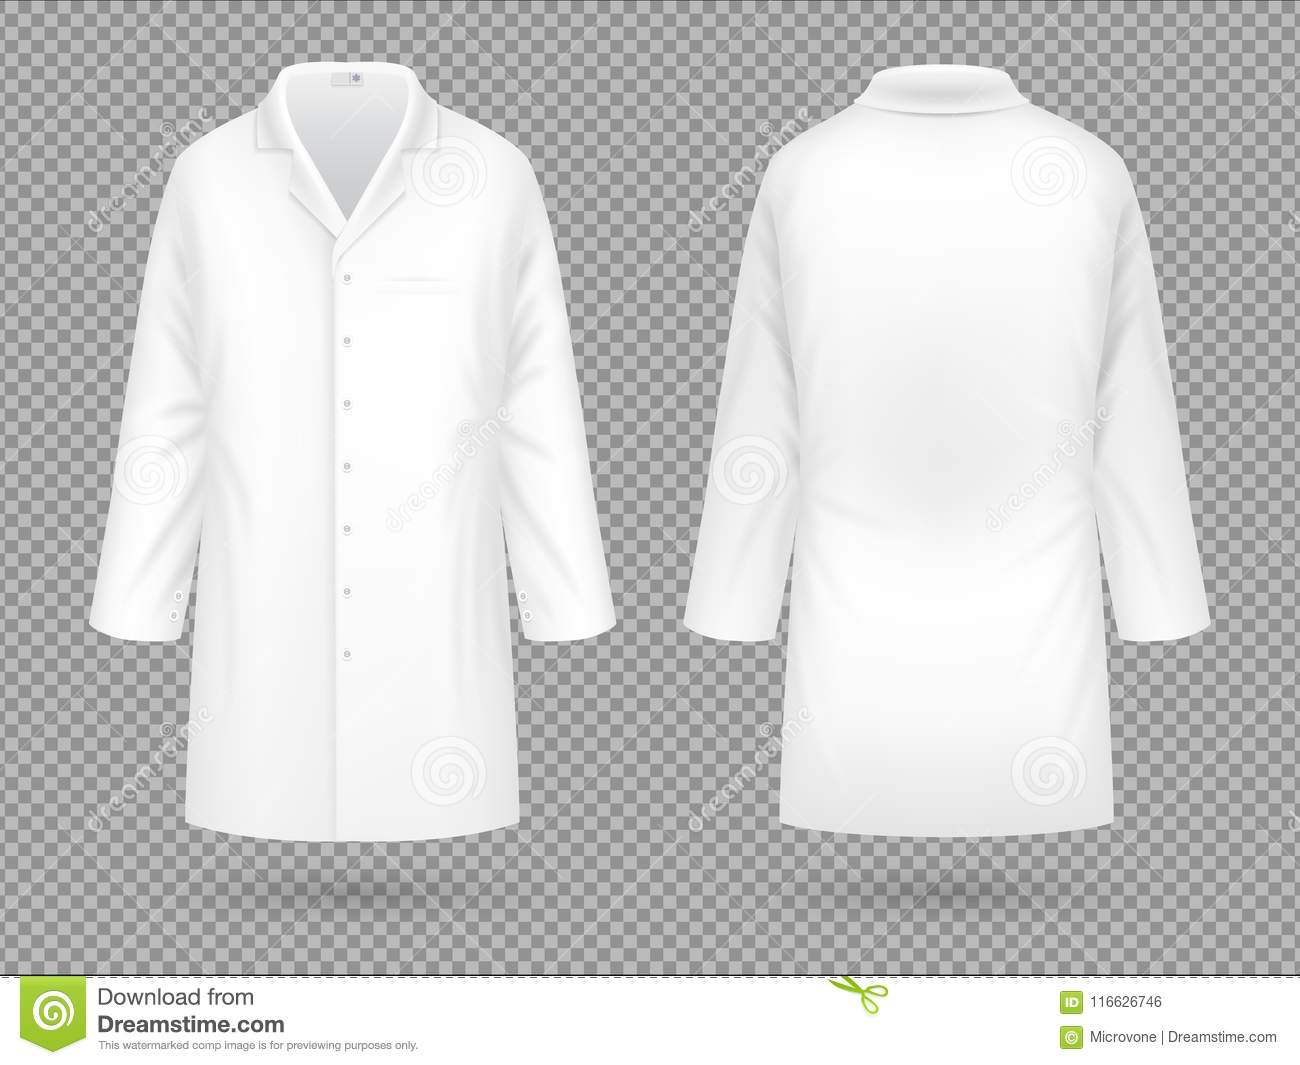 Realistic White Medical Lab Coat Hospital Professional Suit Vector Template Isolated